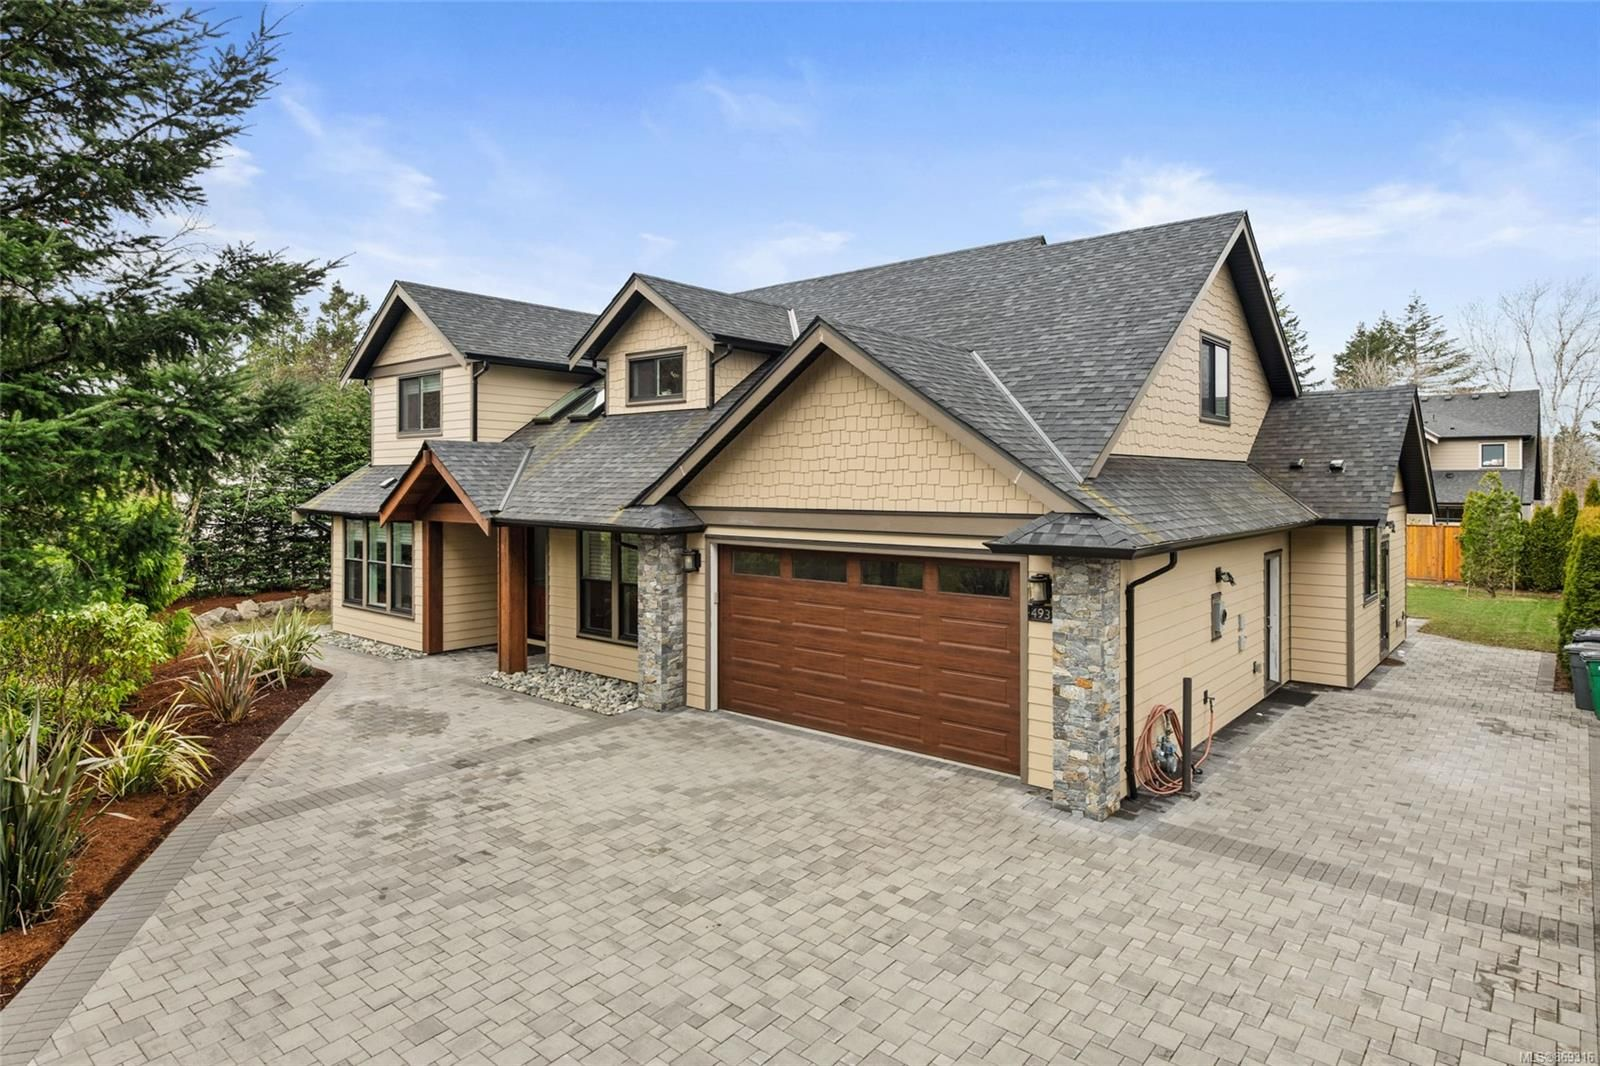 Main Photo: 4932 Wesley Rd in : SE Cordova Bay House for sale (Saanich East)  : MLS®# 869316